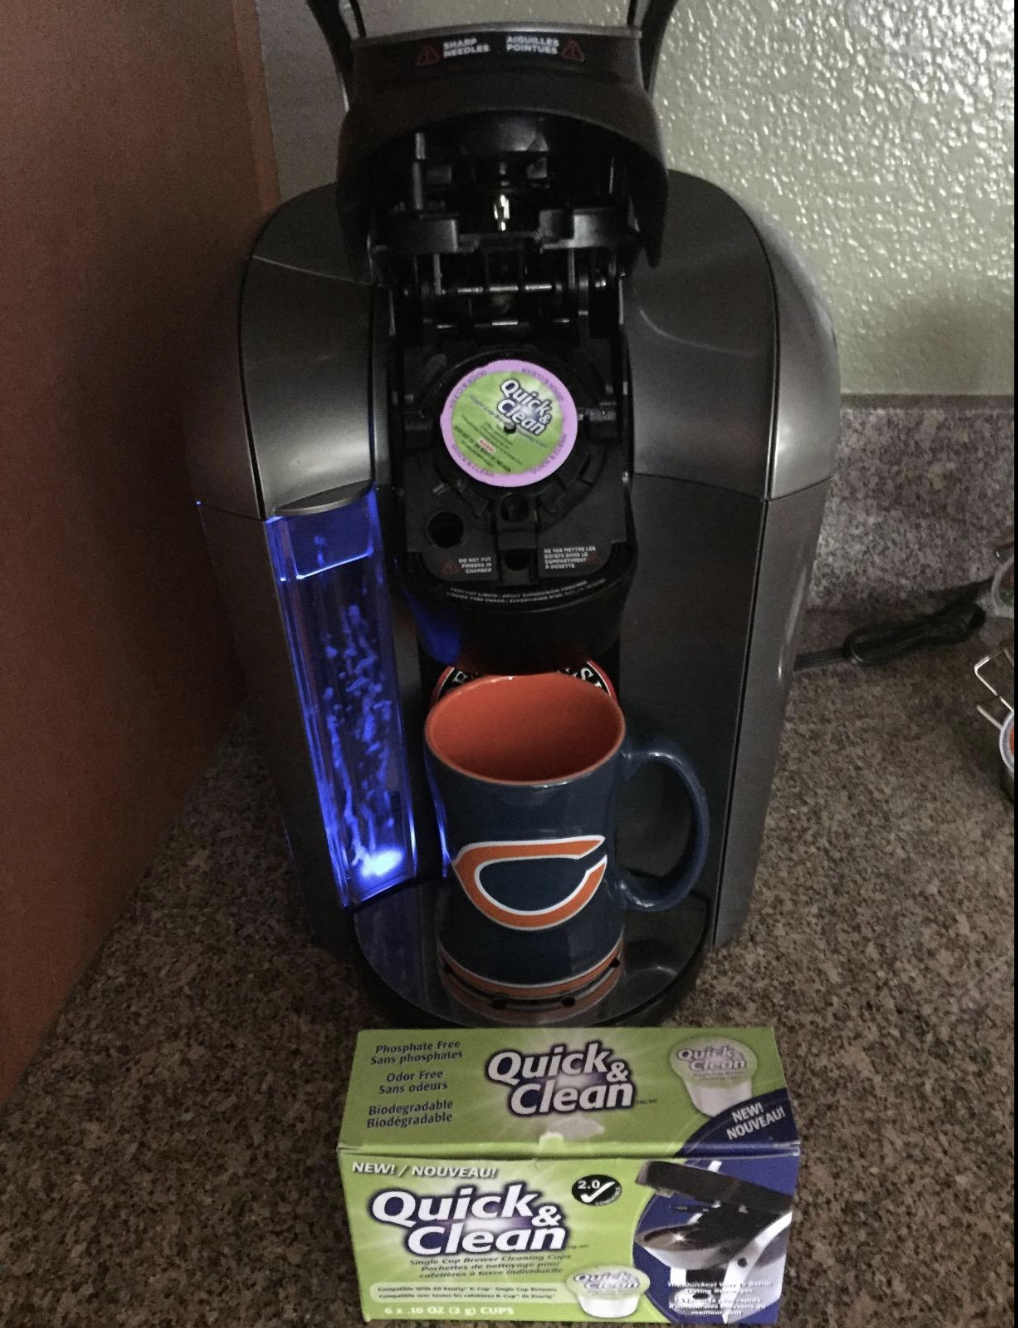 Reviewer image of the cleaning K-cup in a Keurig machine